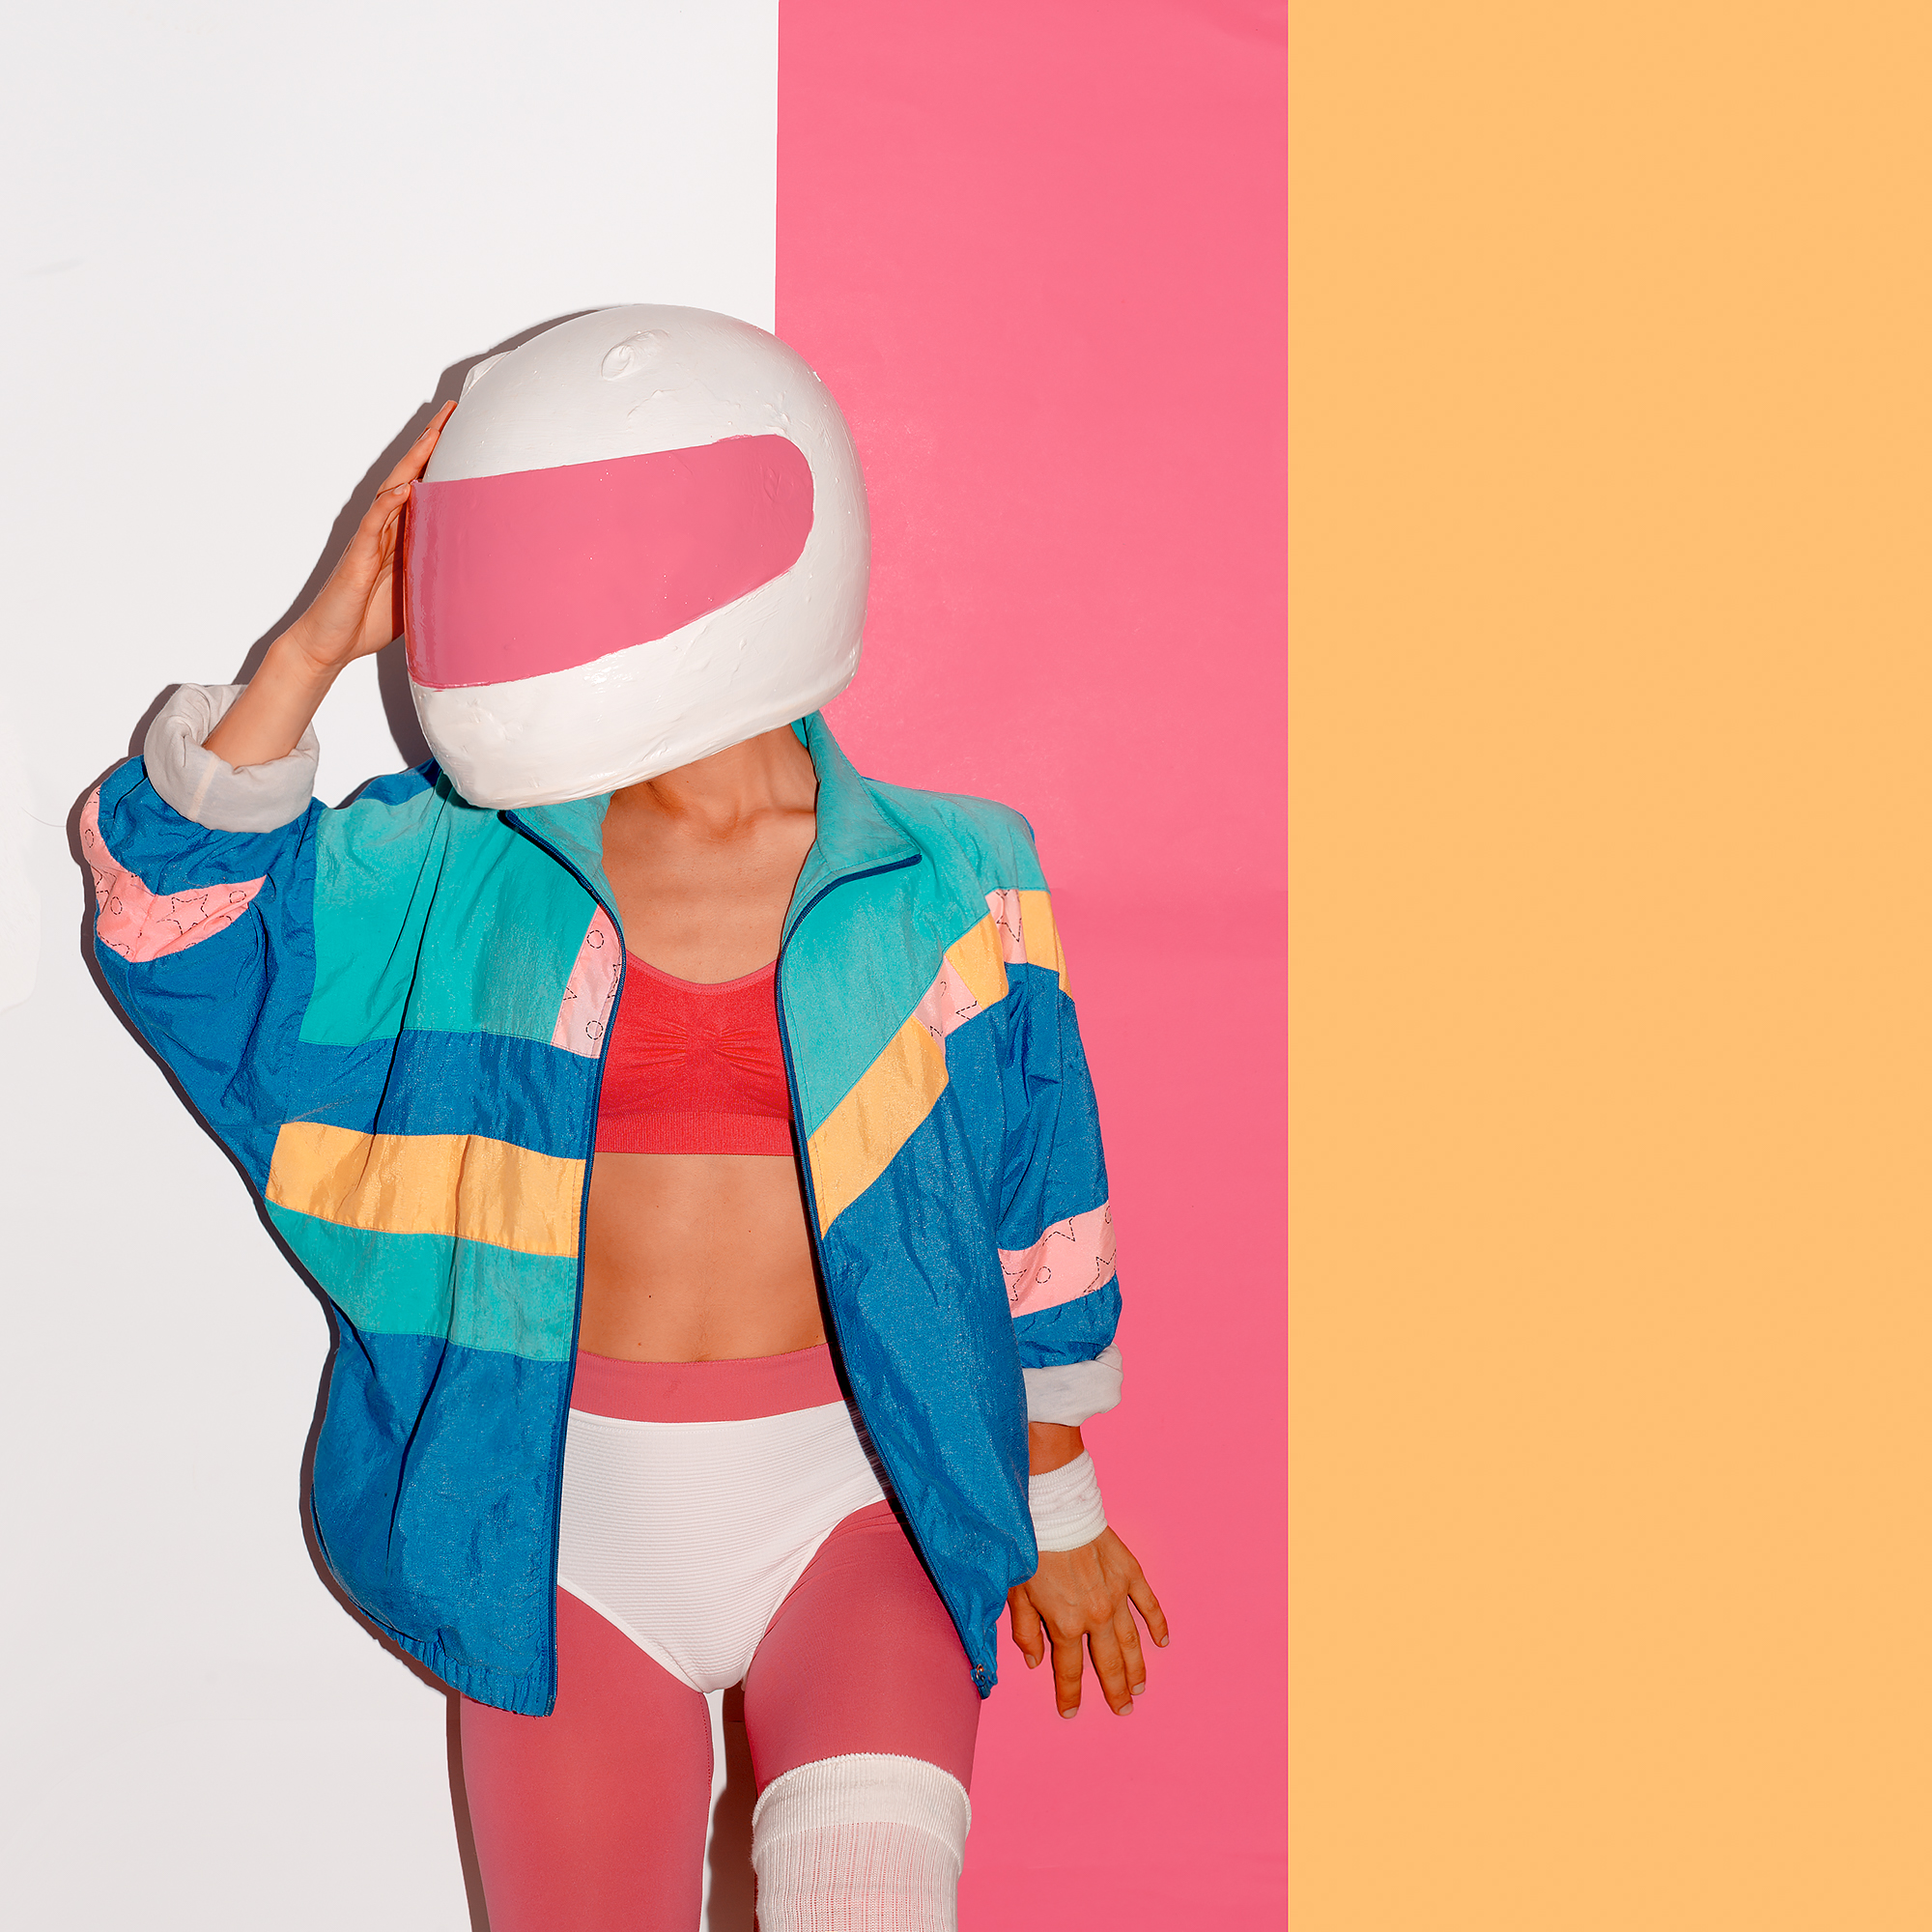 model wearing an astronaut helmet, jacket, and yoga outfit underneath